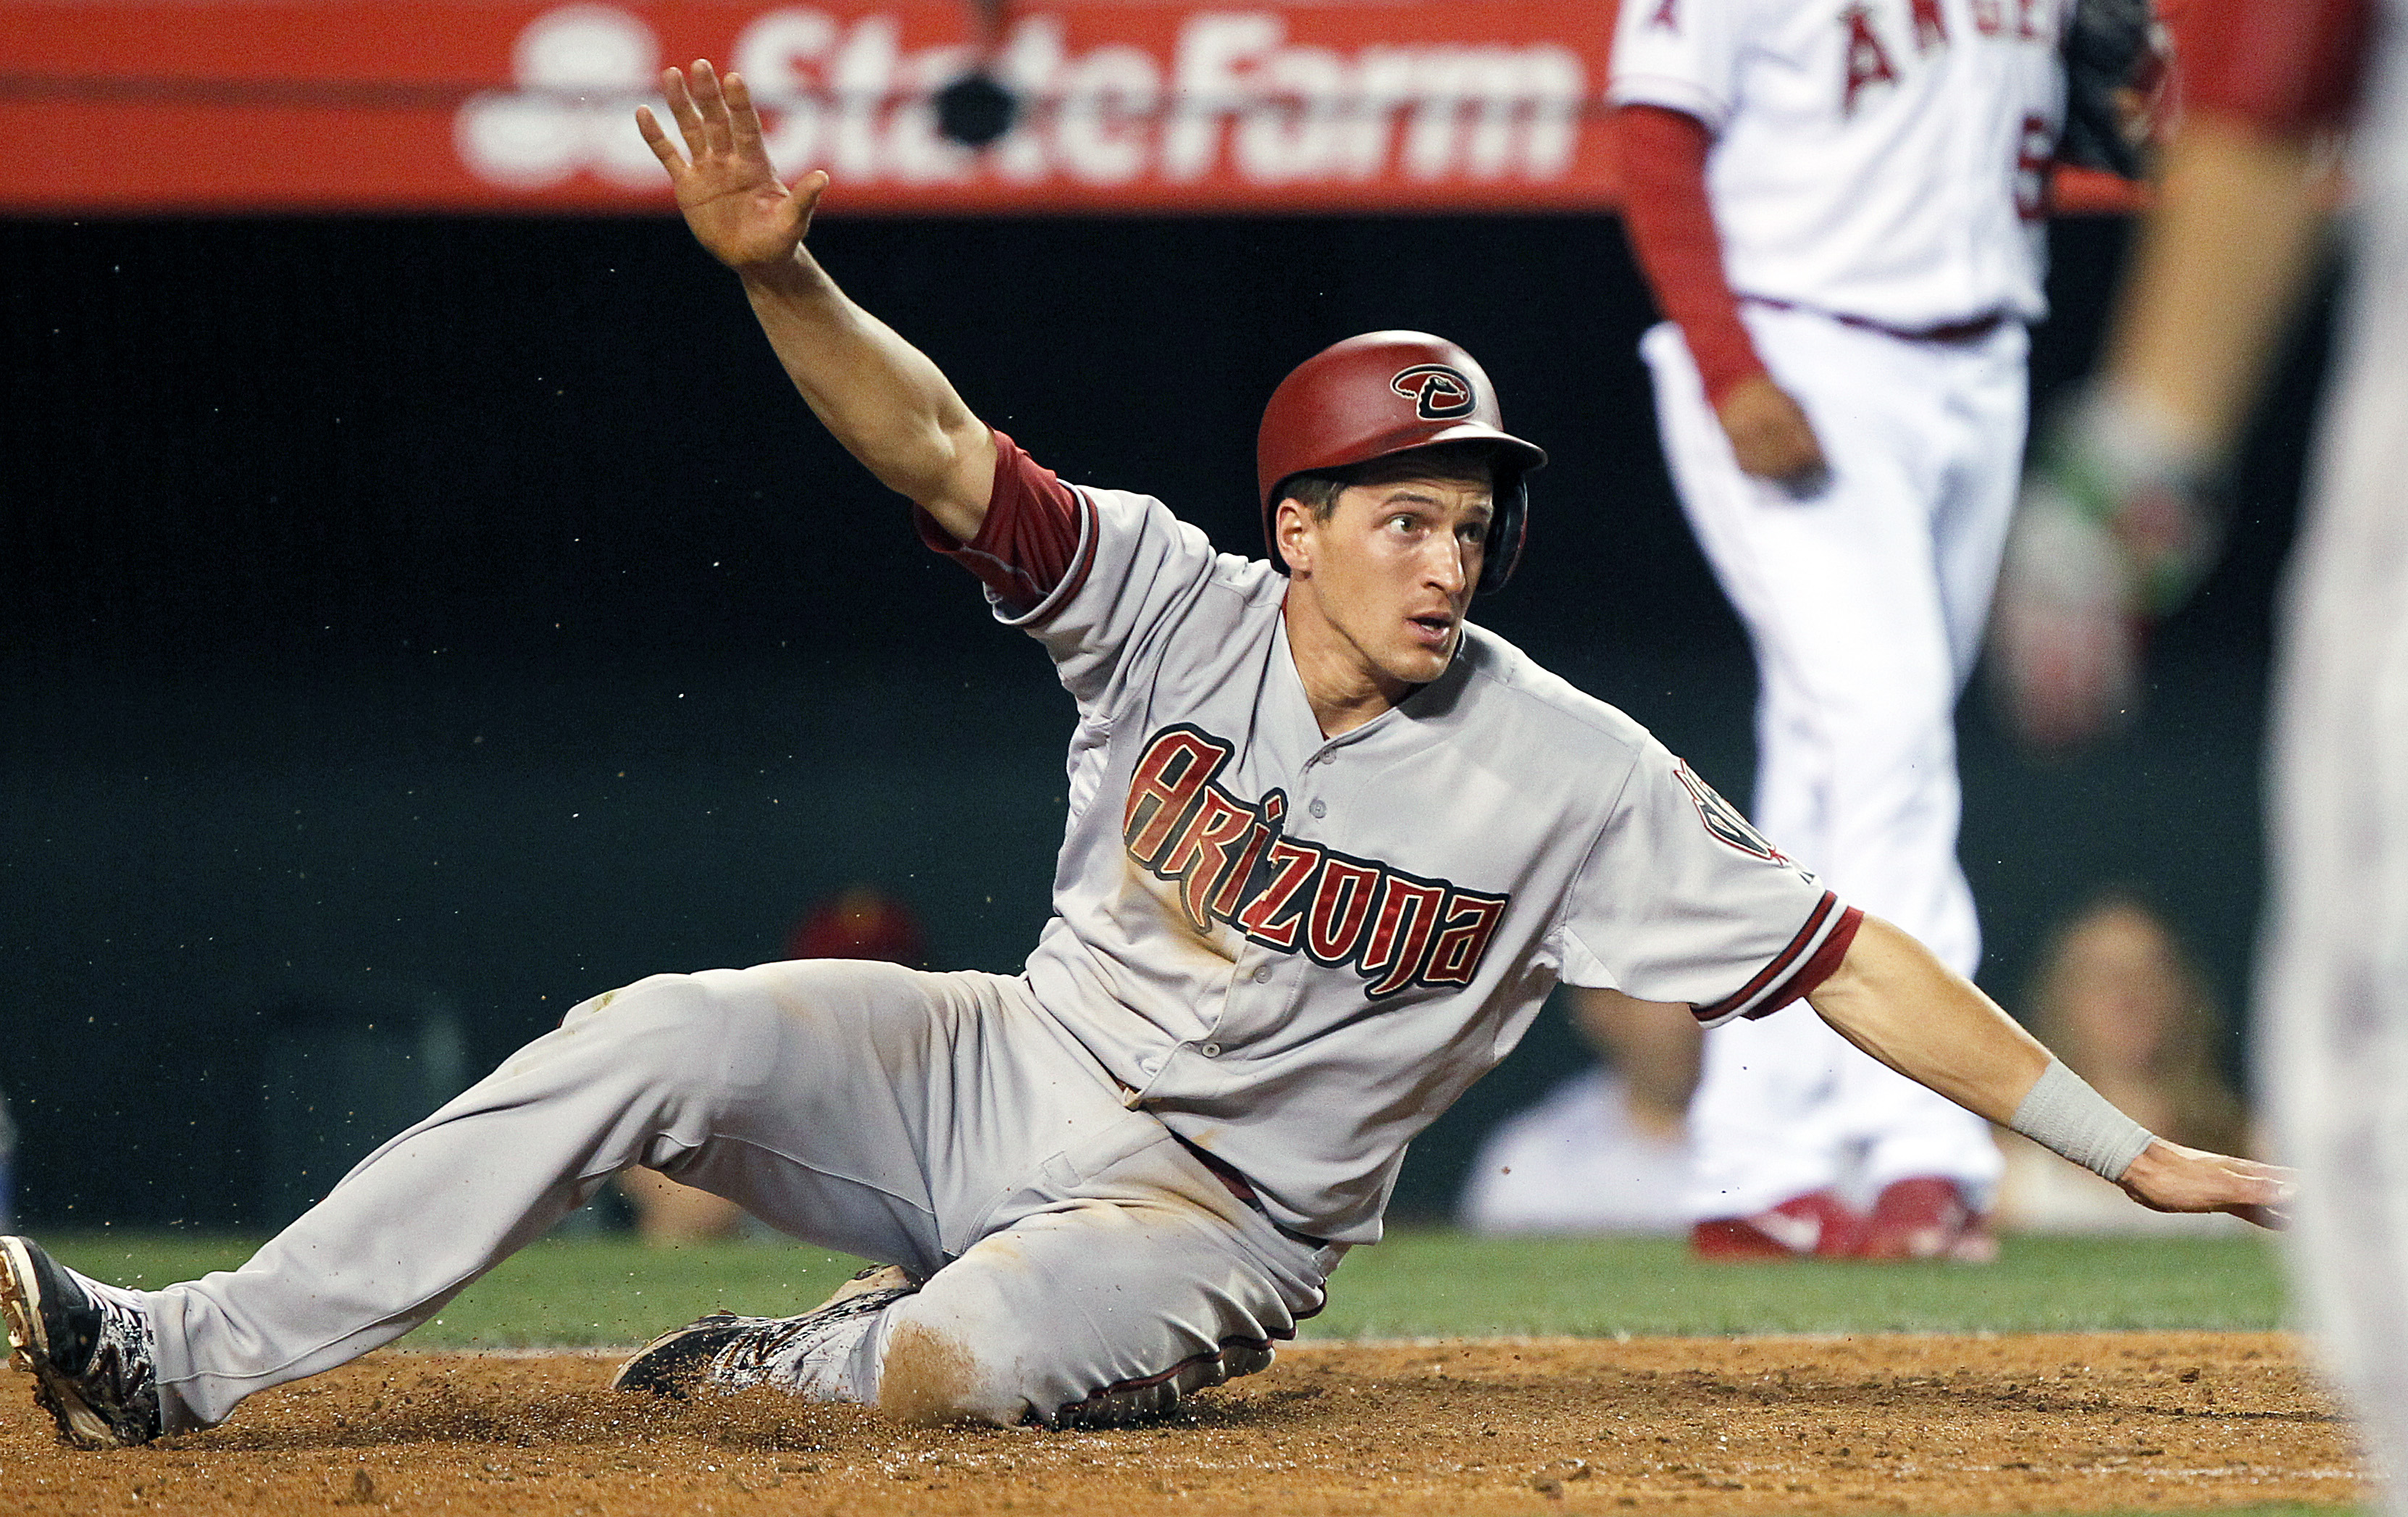 Arizona Diamondbacks' Nick Ahmed signals to the umpire that he is safe, sliding past the tag of Los Angeles Angels catcher Carlos Perez on a sacrifice fly by A.J. Pollock, during the ninth inning of a baseball game in Anaheim, Calif., Monday, June 15, 201